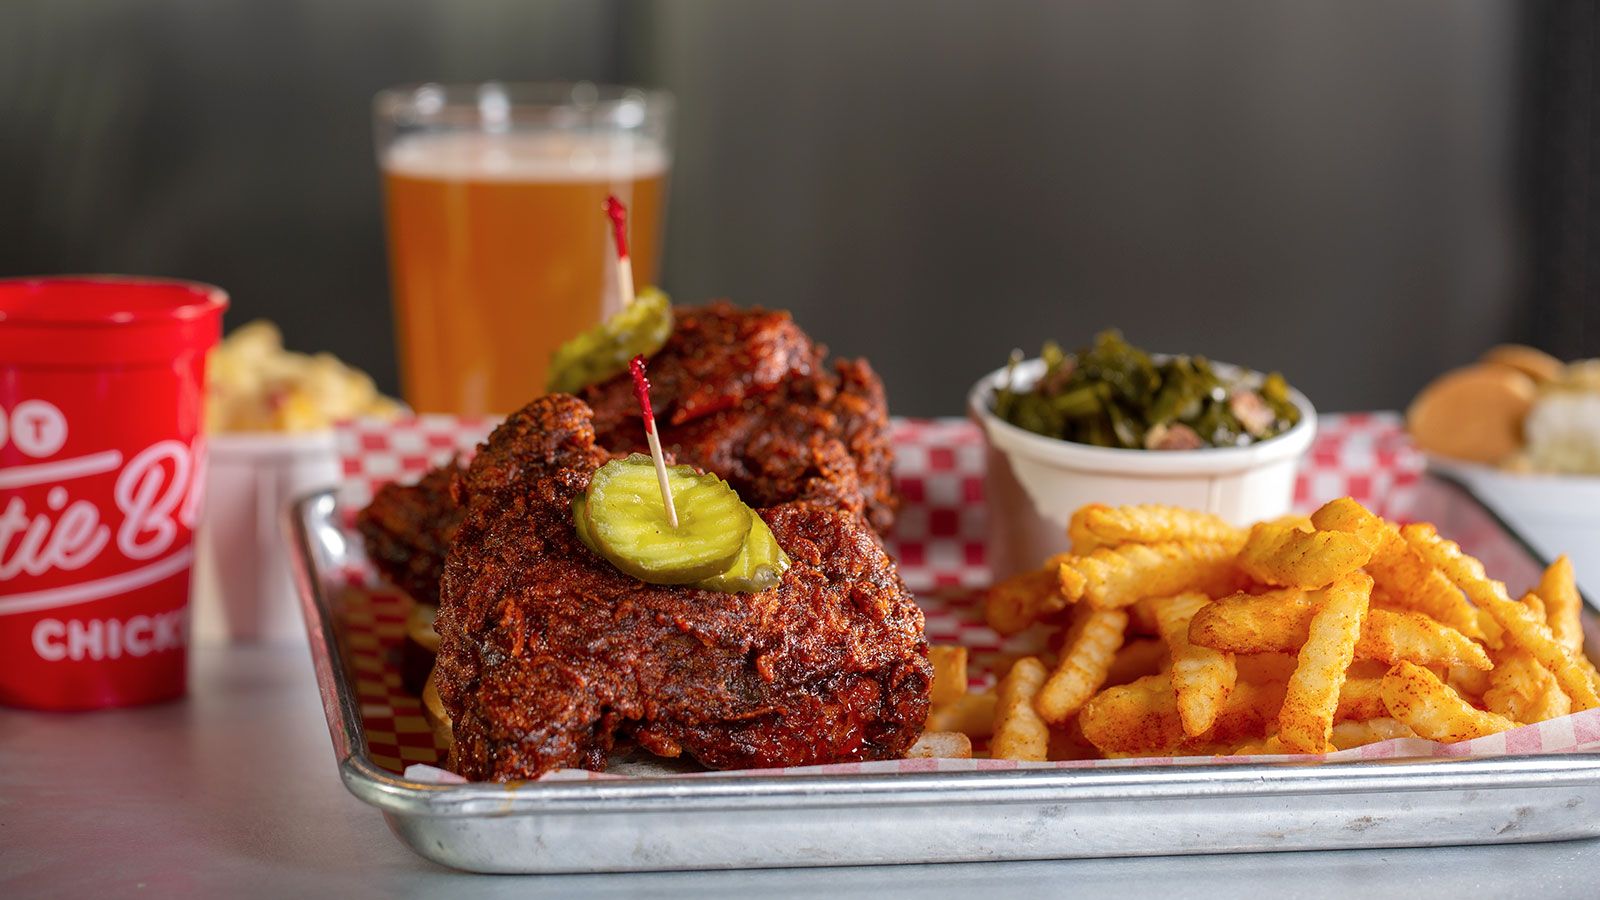 Hattie B's Hot Chicken at The Cosmopolitan